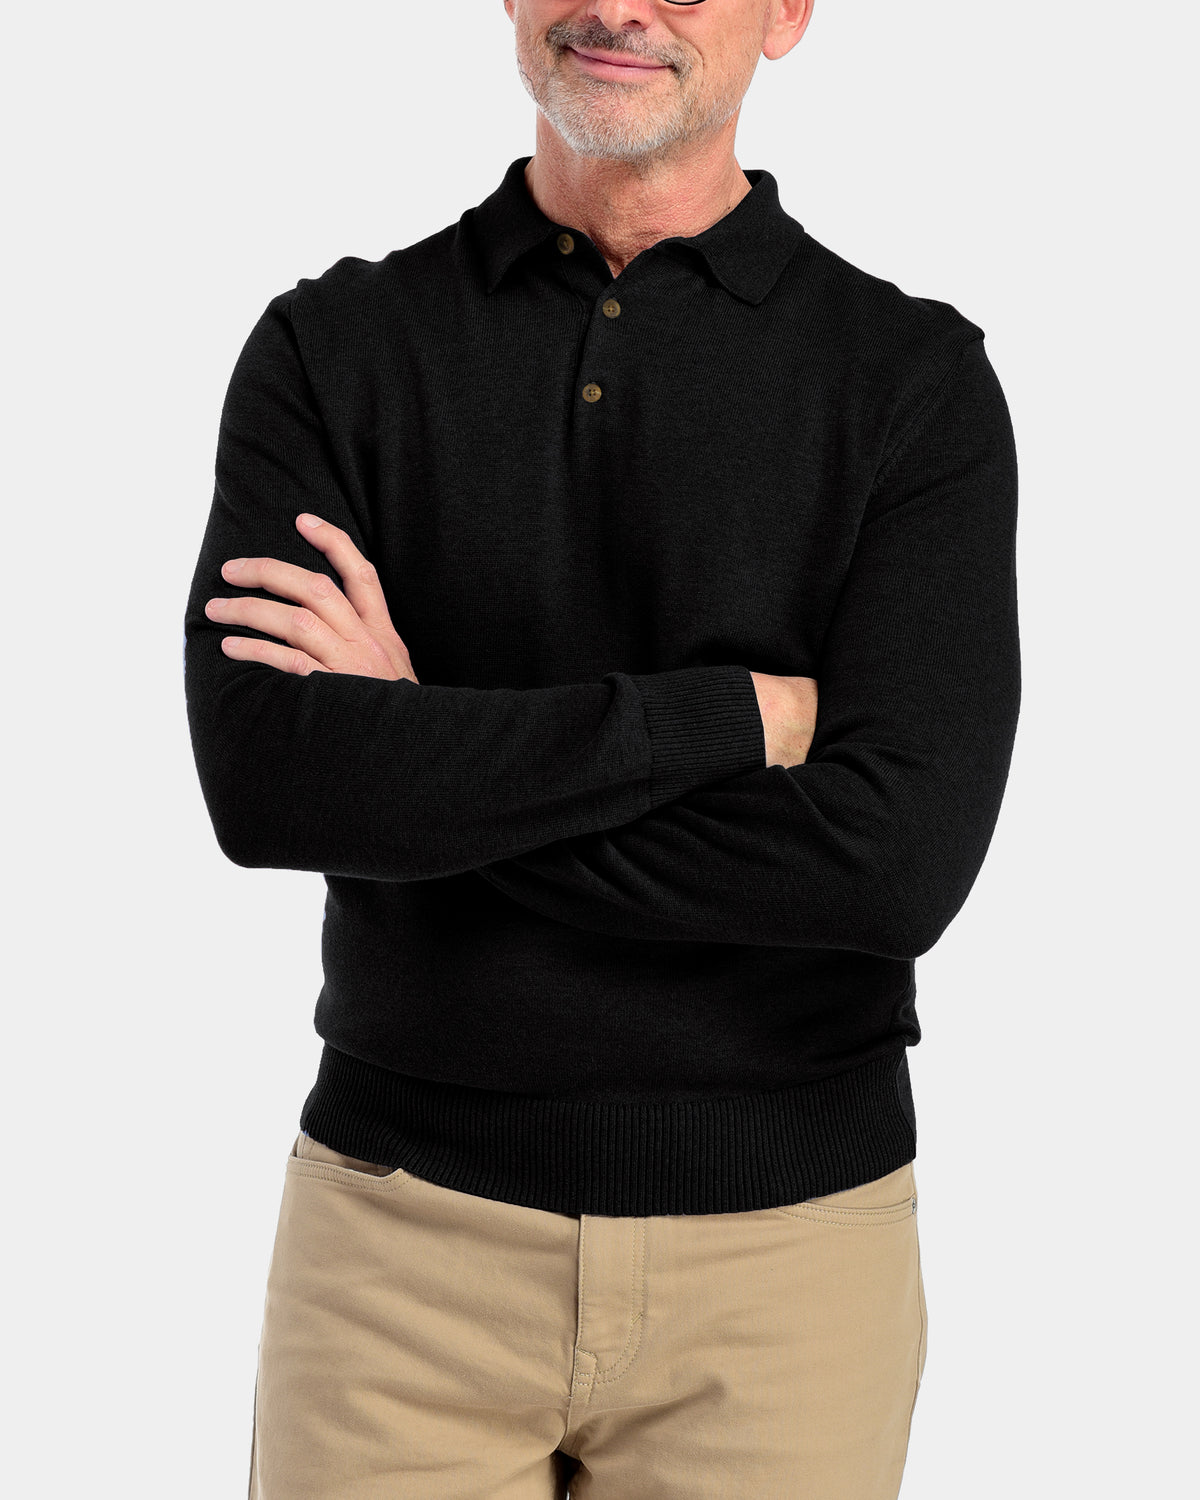 Men's Arthur Polo Sweater